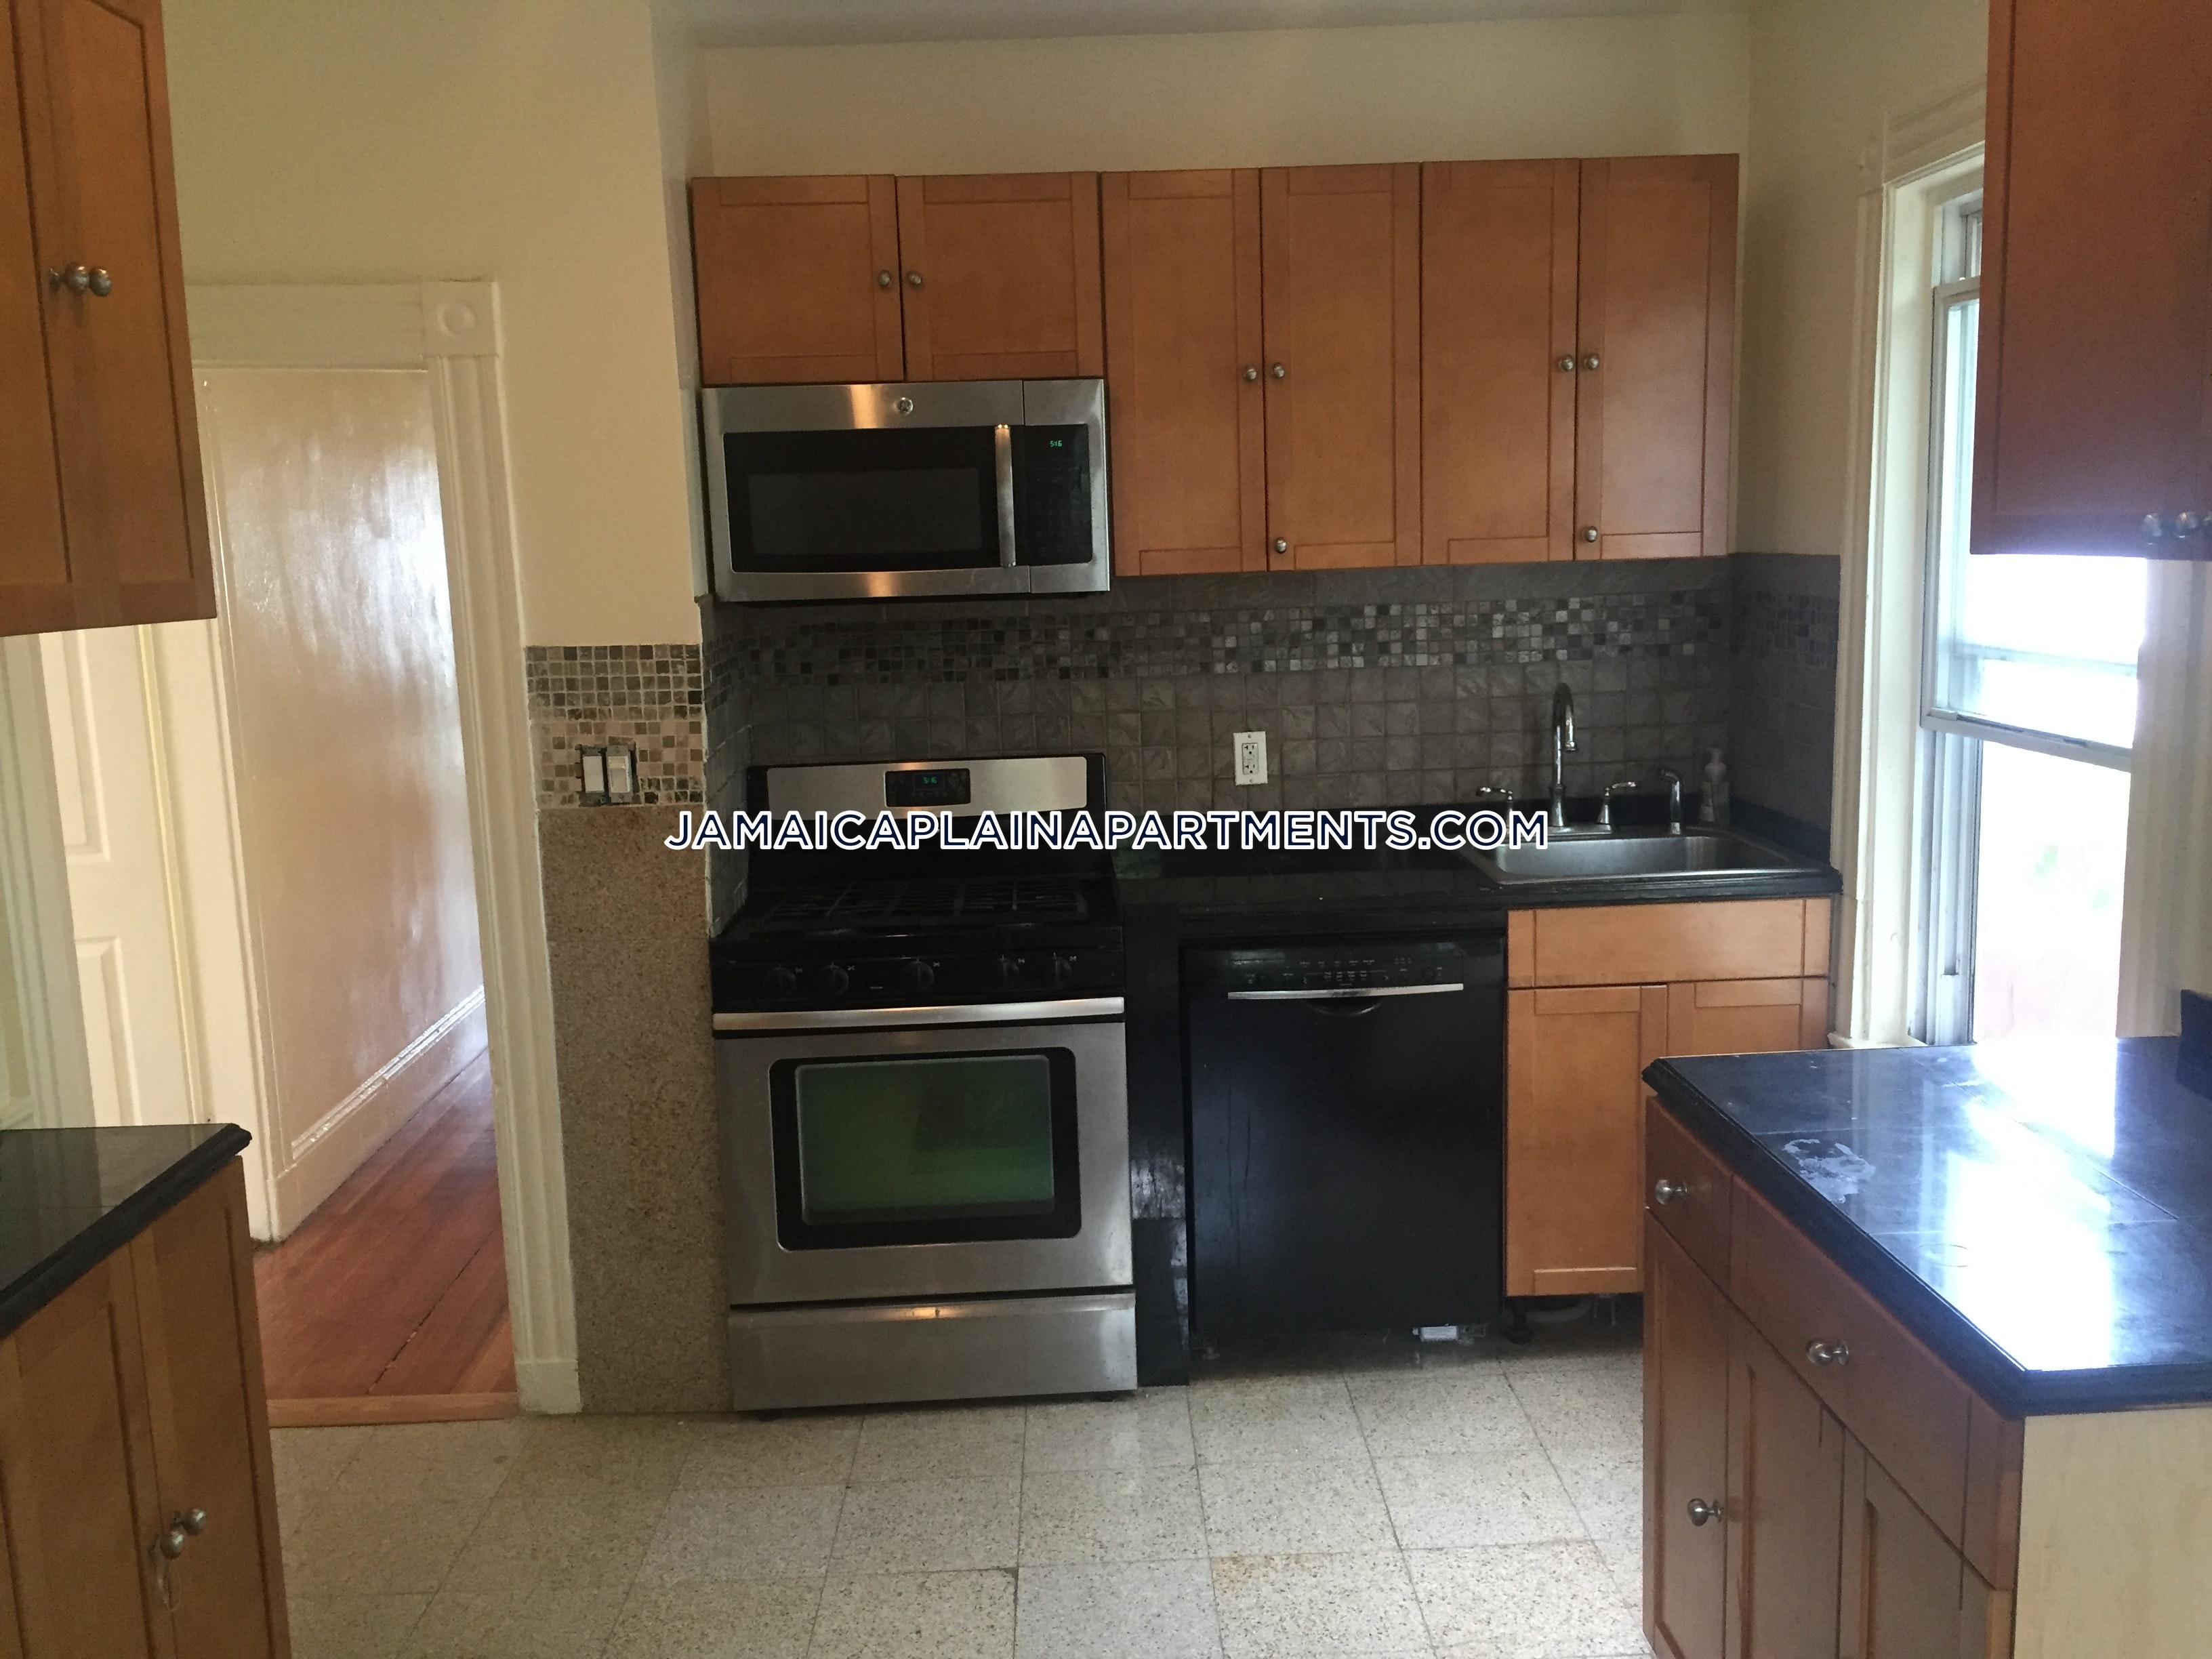 3-beds-1-bath-boston-jamaica-plain-stony-brook-2600-390574